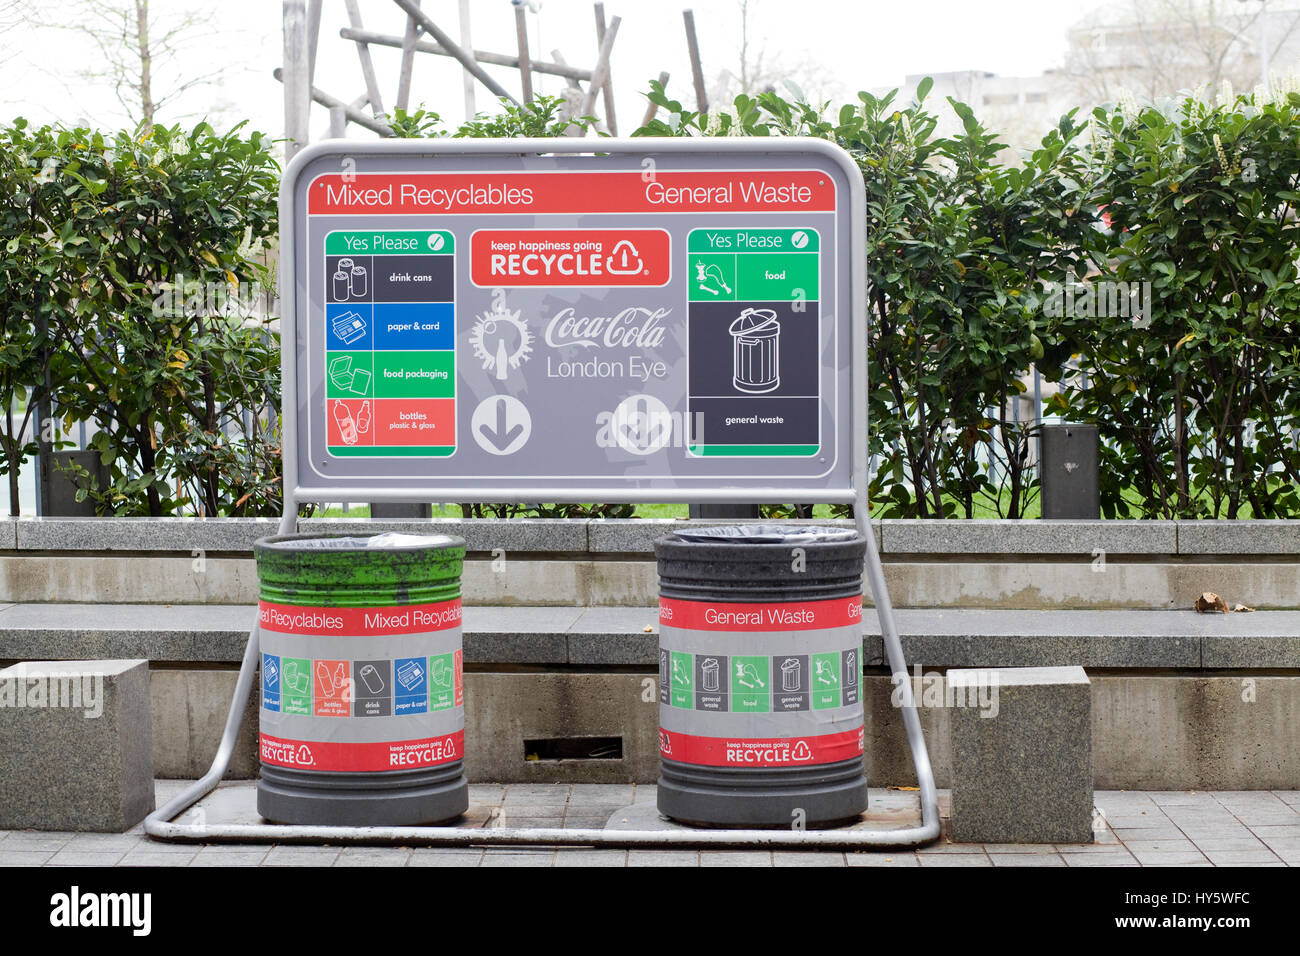 Mixed recyclables and general waste bins in London - Stock Image